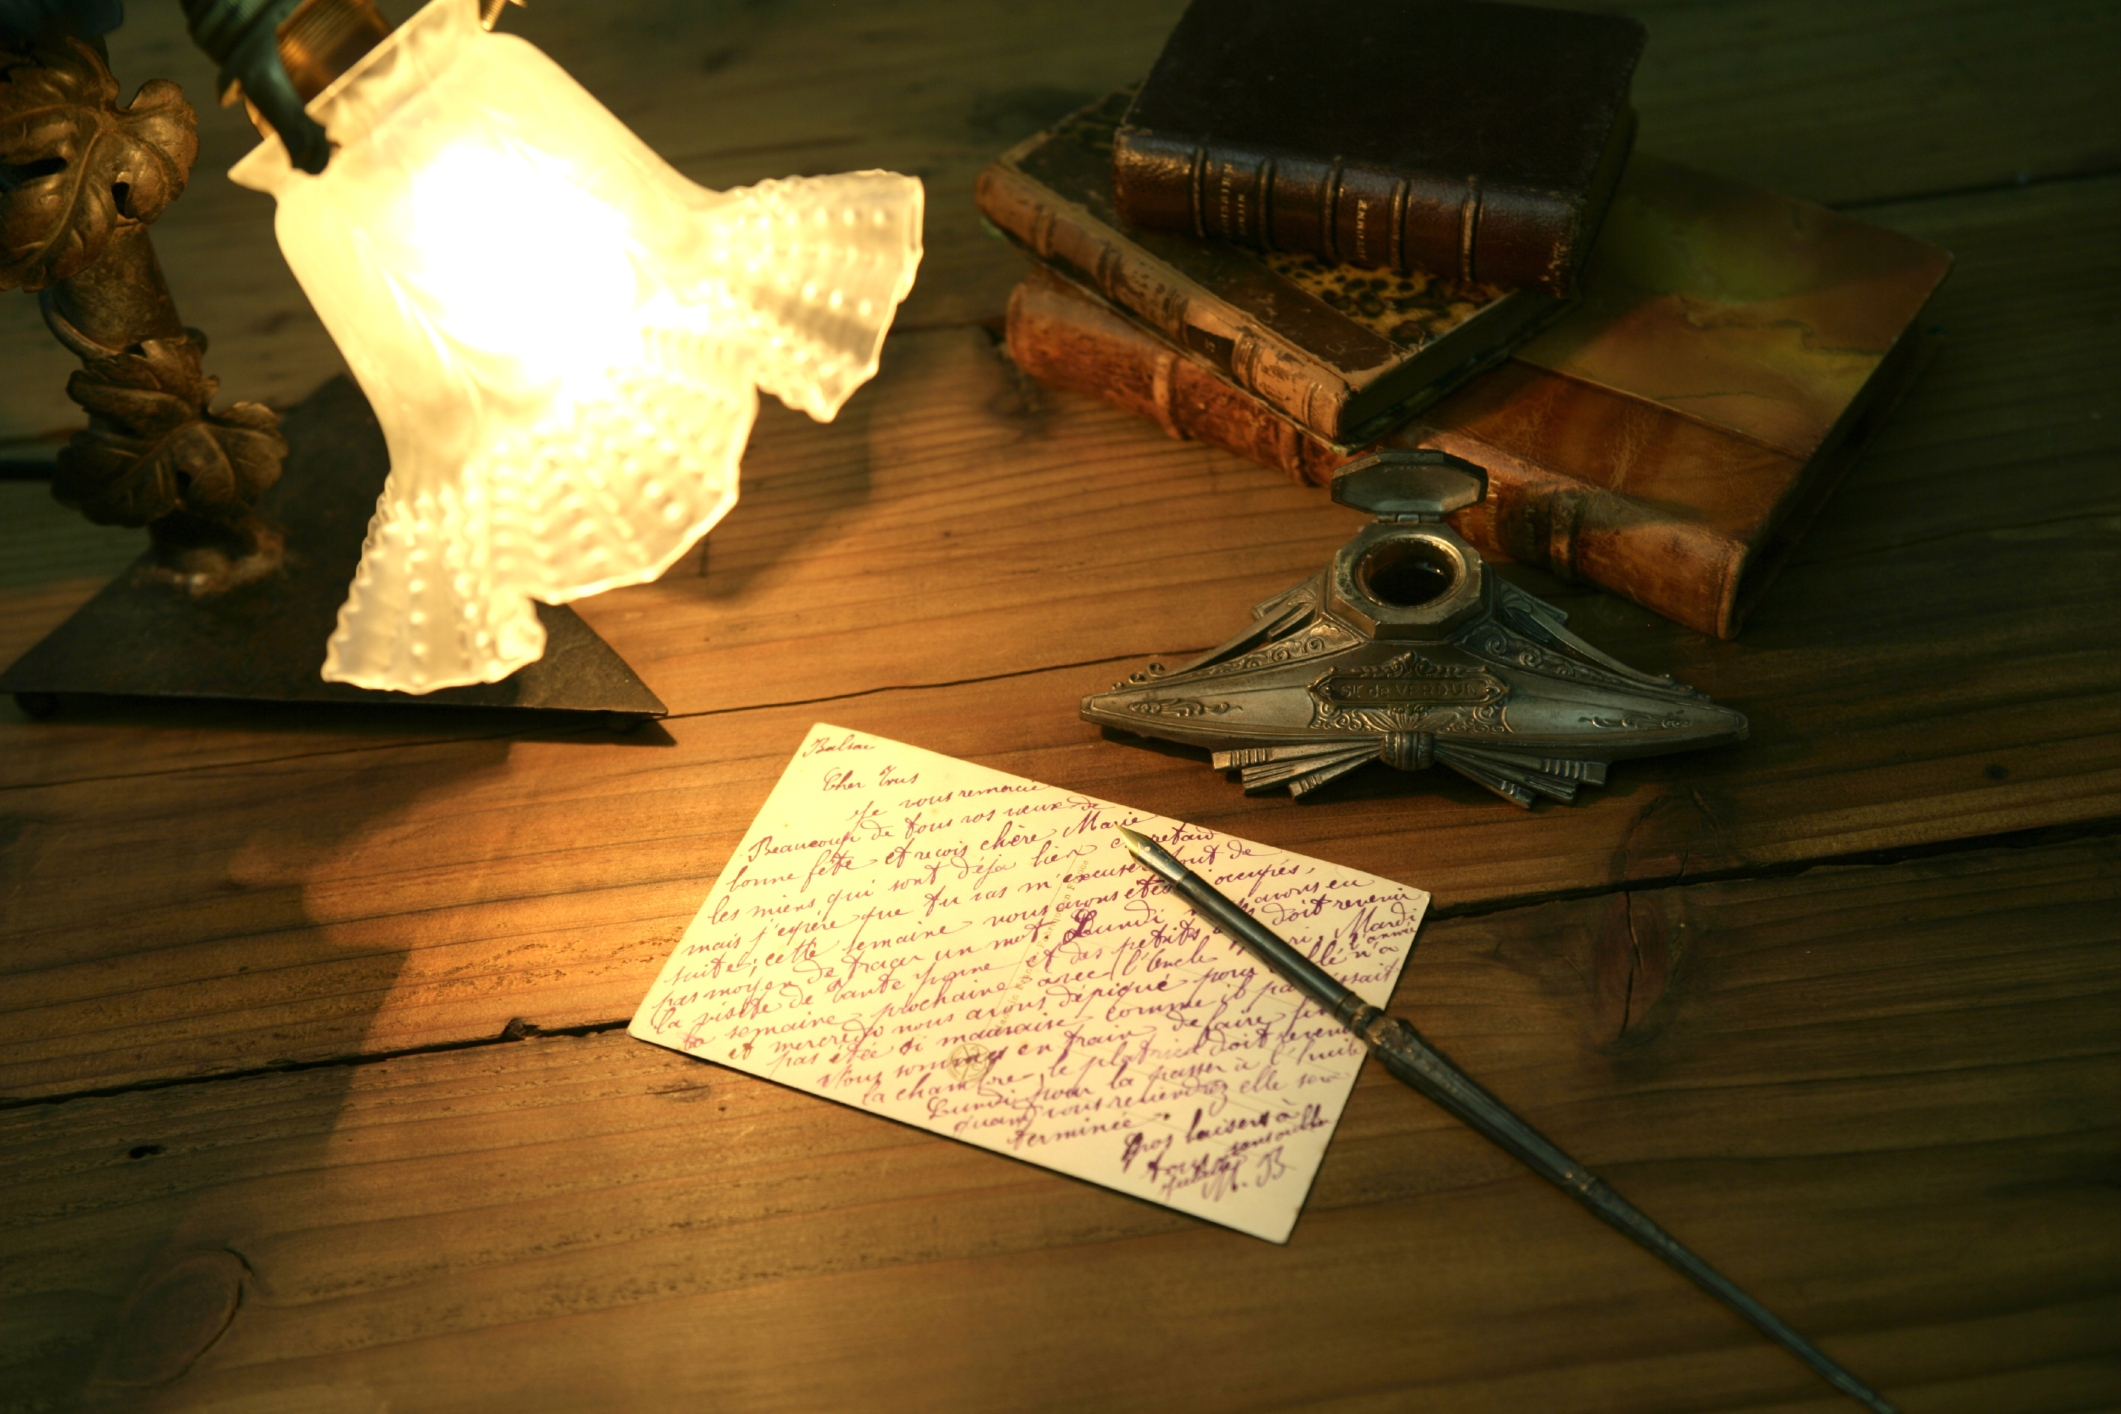 a formal correspondence guidelines Correspondence club of sarasota, guidelines explained here can and will  apply to all aspects of your life now and in the future, making your  communications.